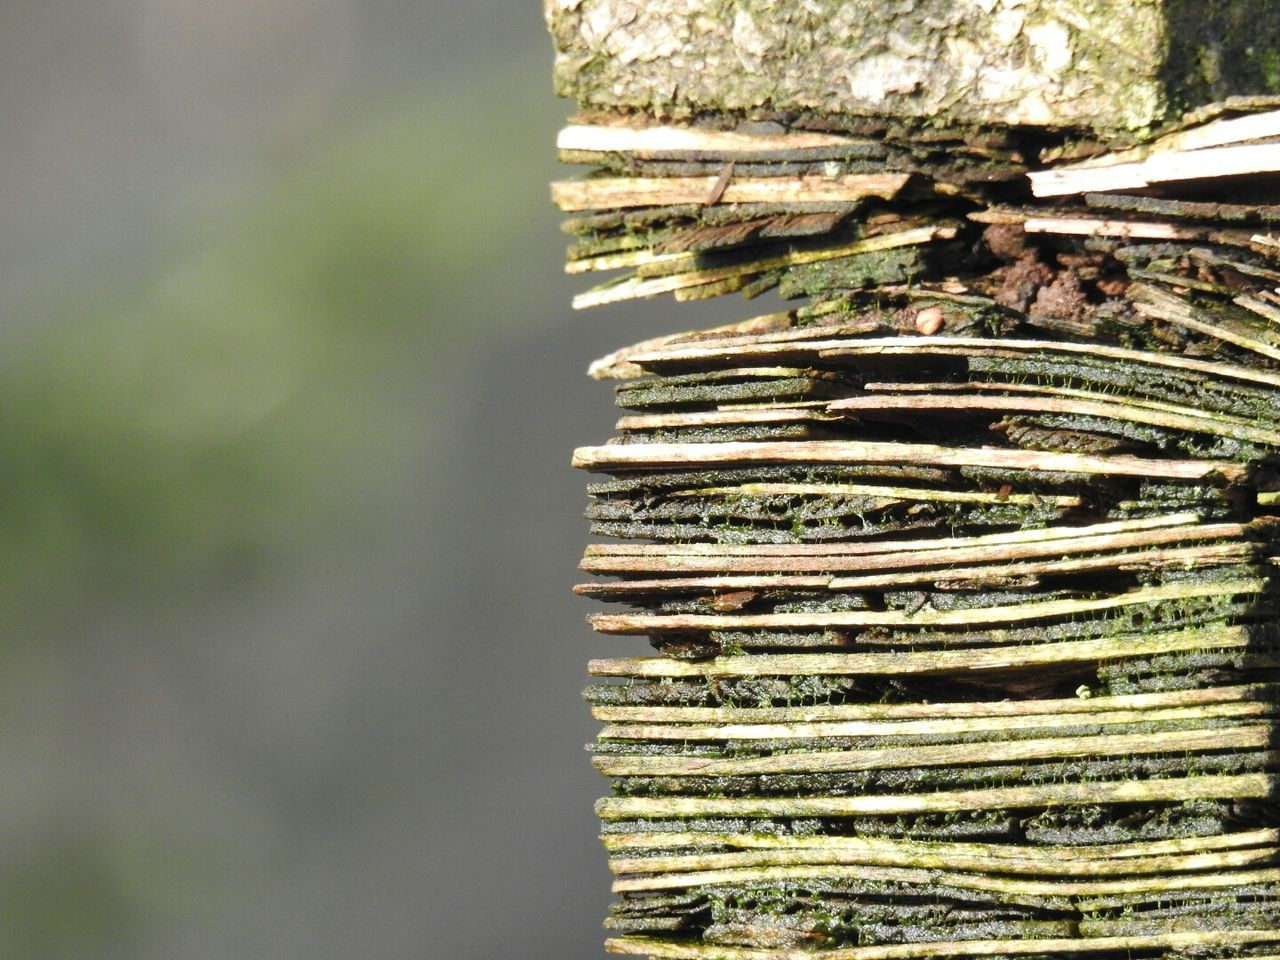 Pallet Wood - Material Textured  Close-up Focus On Foreground Still Life Wooden Texture Green Color Moss Pressed  No People Tree Photography Nikon P900 Germany Doğa EyeEm Gallery Nikon Outdoor Photography GERMANY🇩🇪DEUTSCHERLAND@ Taking Photos Wooden Forest Textured  Hello World